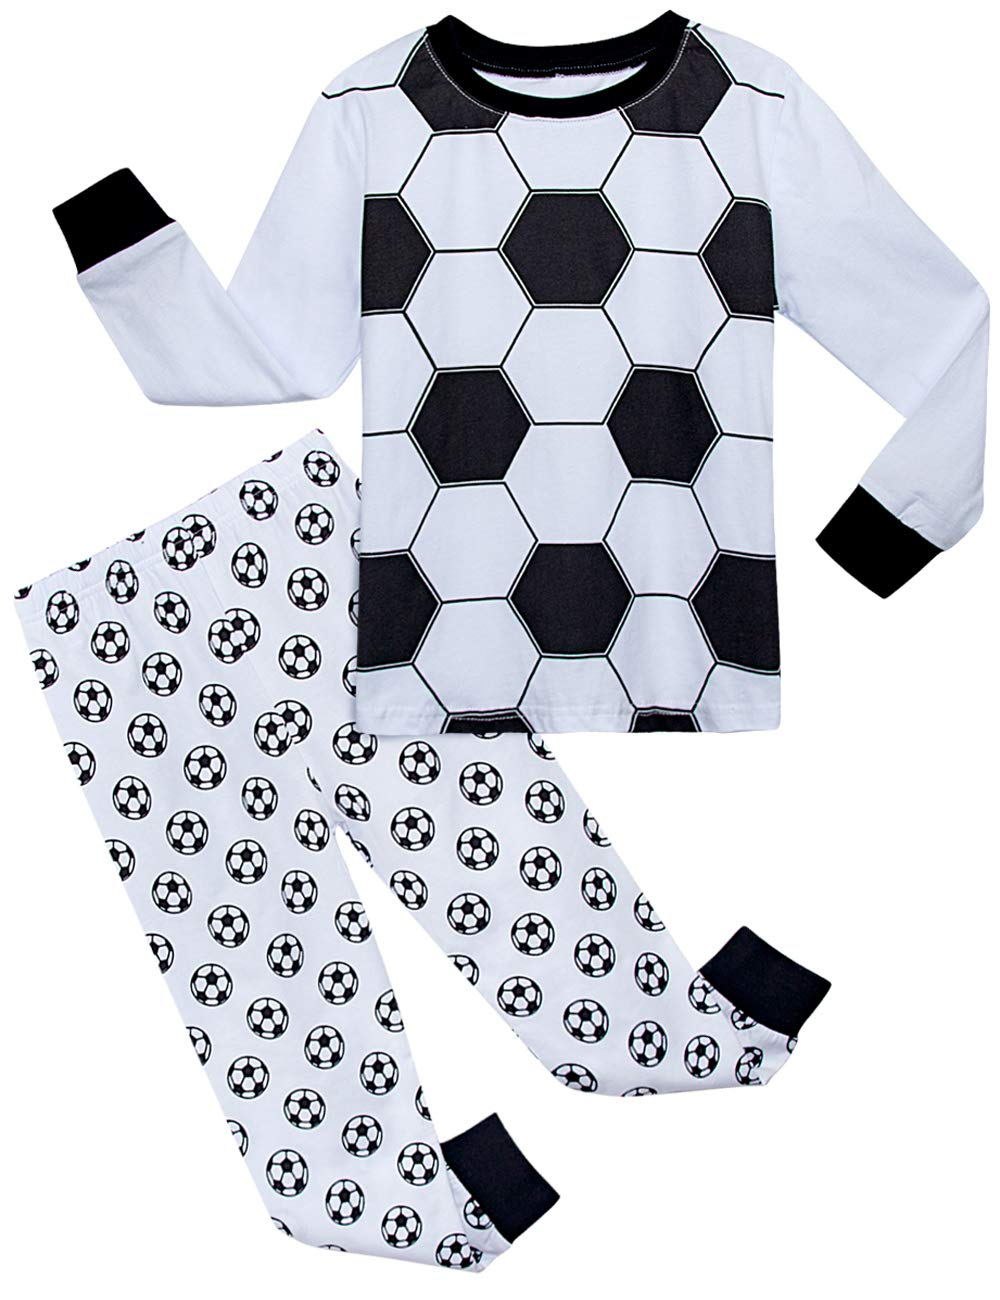 Image of Cotton Long Sleeve Soccer Pajamas for Boys